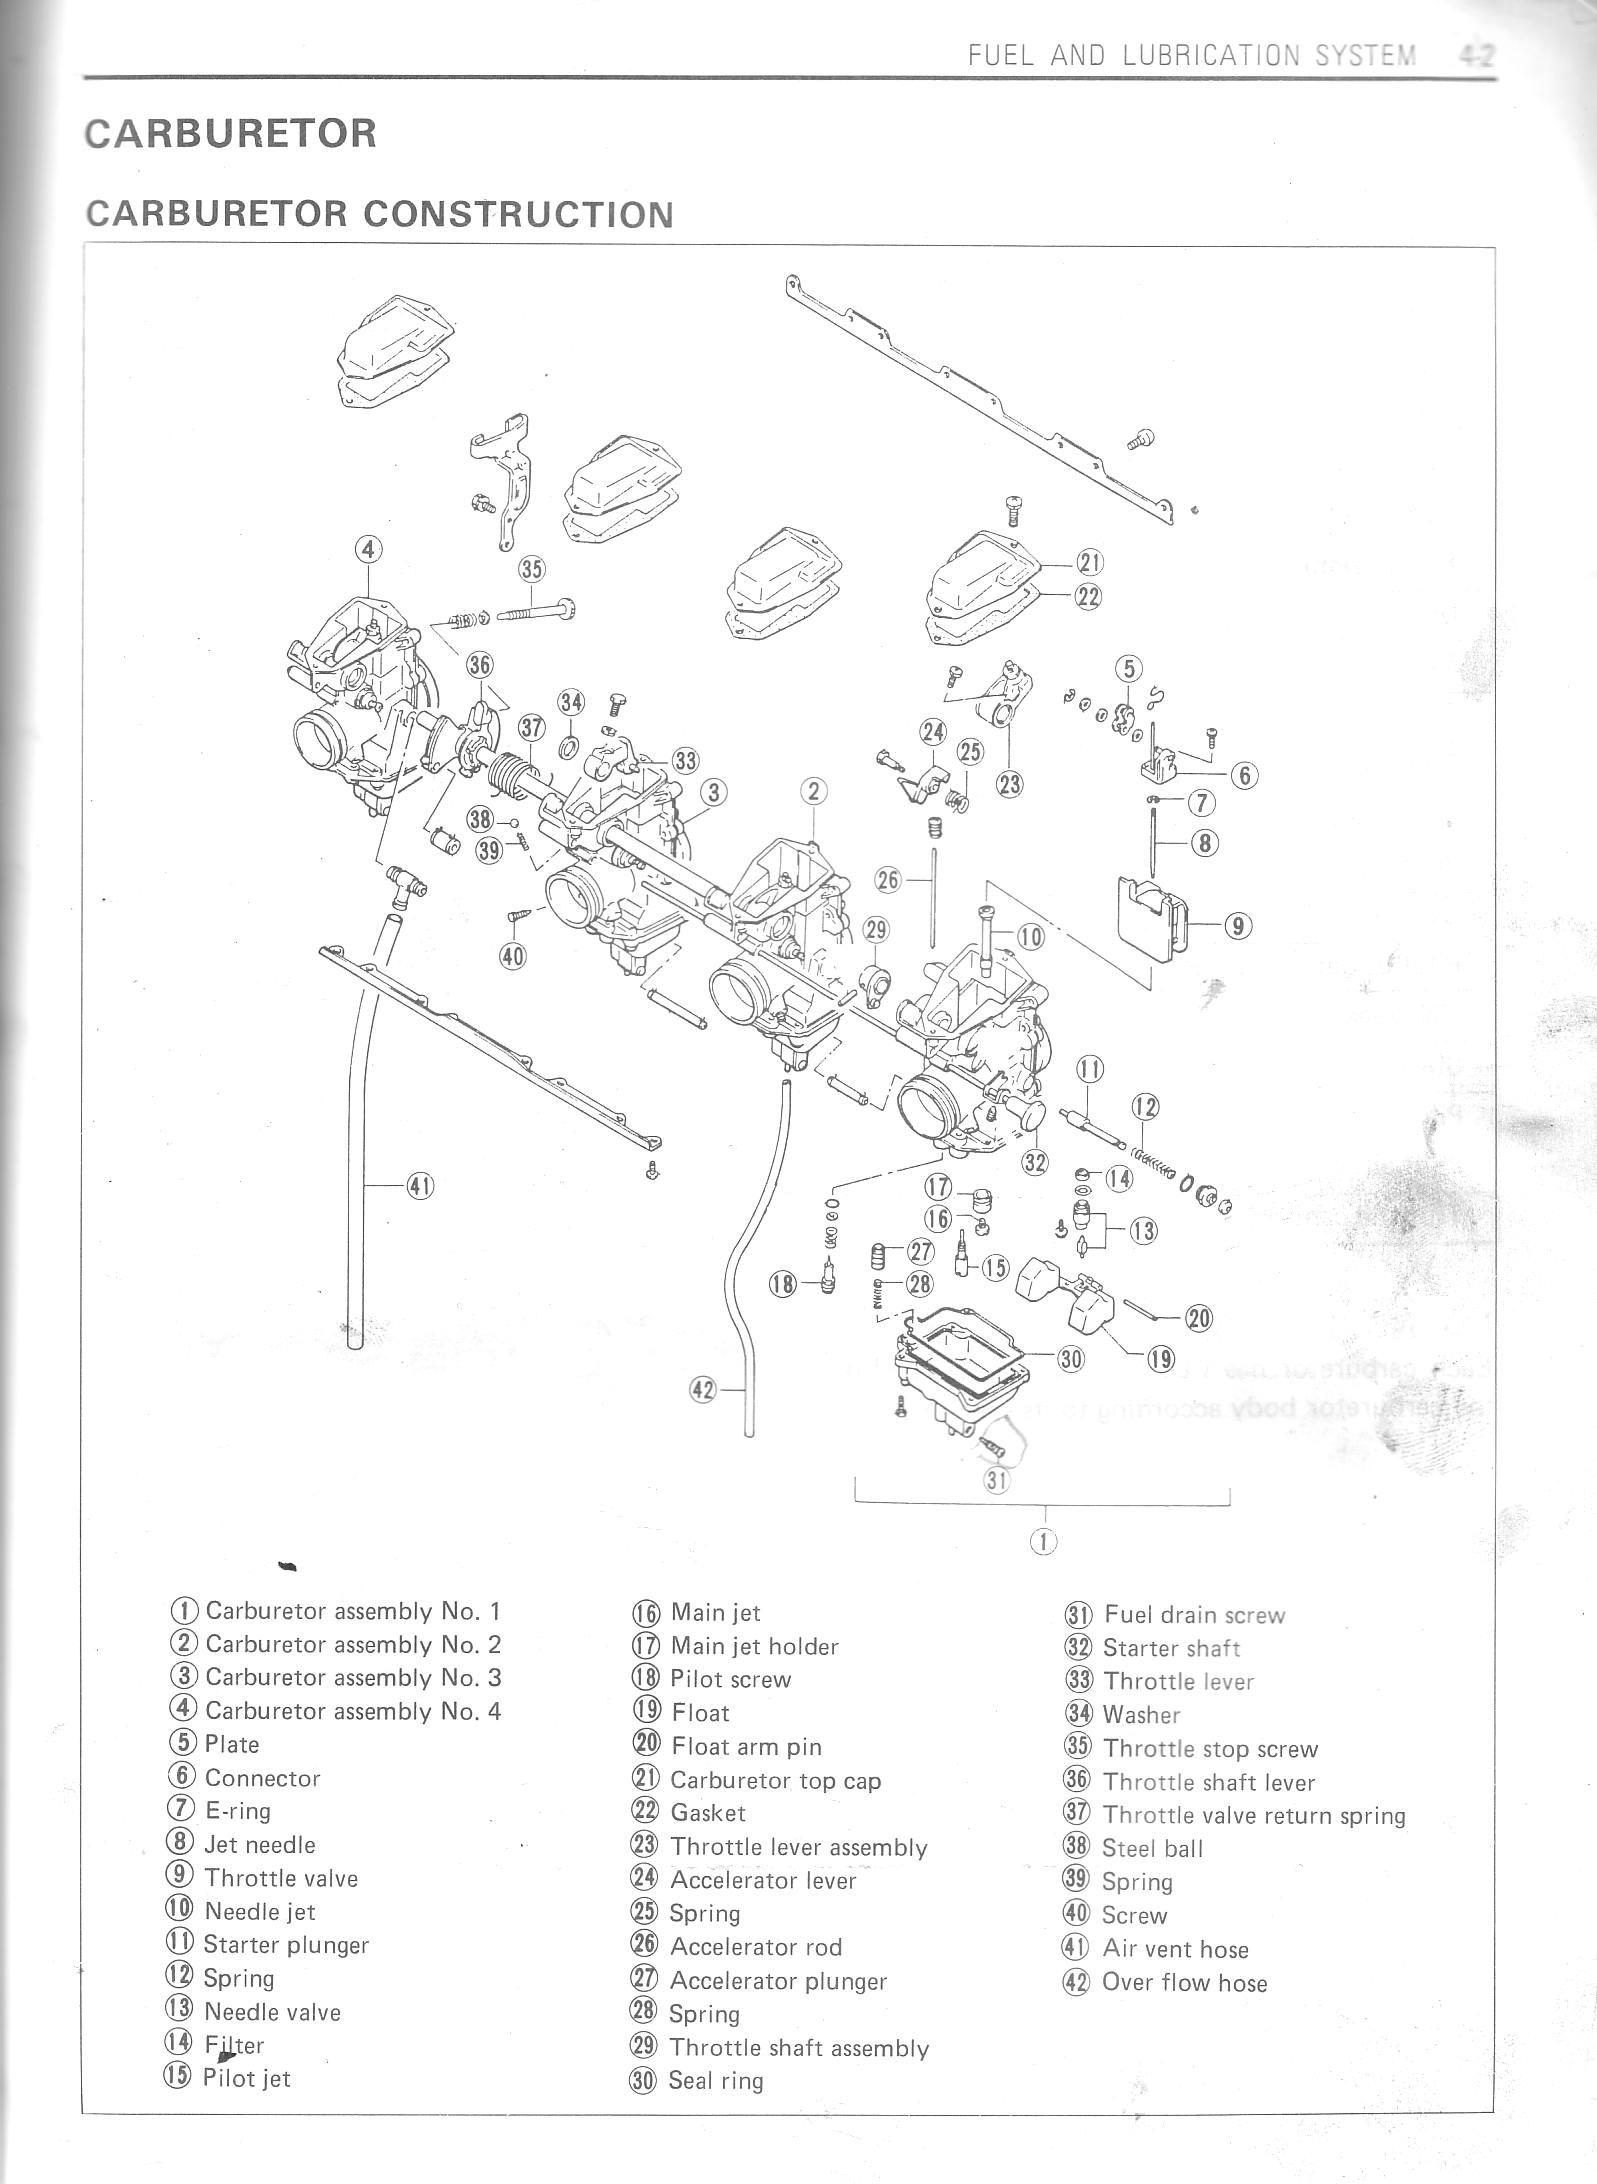 Suzuki Sv650 Engine Diagram. Suzuki. Auto Wiring Diagram